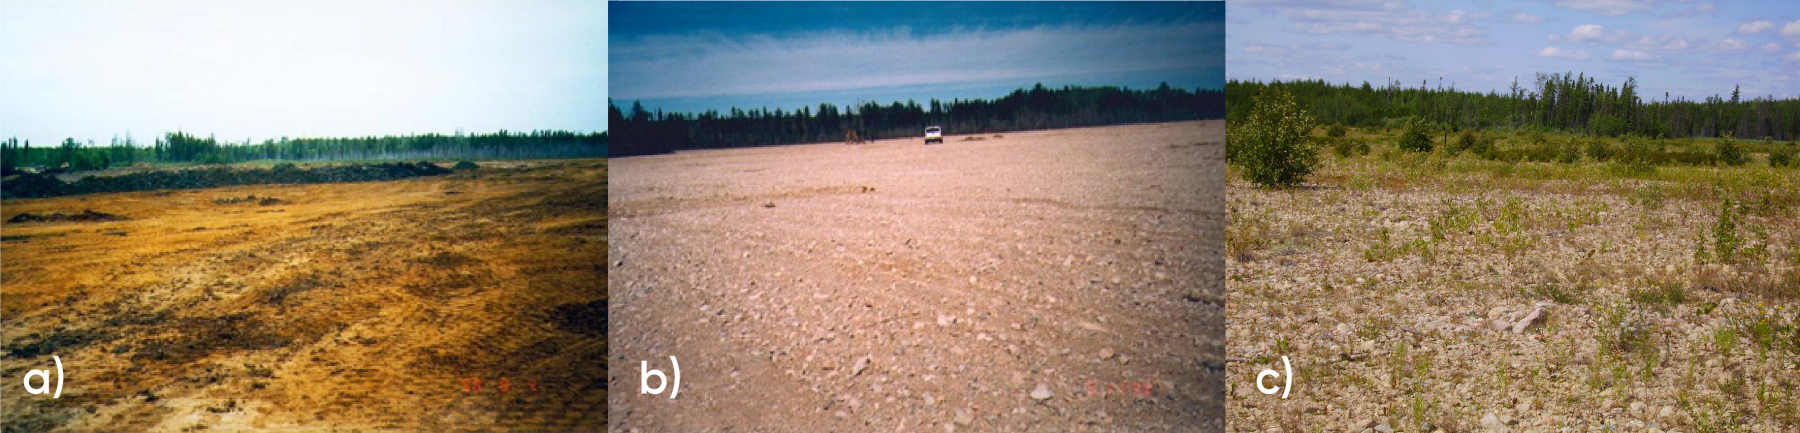 Three photographs of the Lorraine mine site in Quebec. The first photograph shows the mine site before reclamation. The second photo shows soil and rocks covering the mine site. The third photo shows that grasses and shrubs have grown over the mine site.